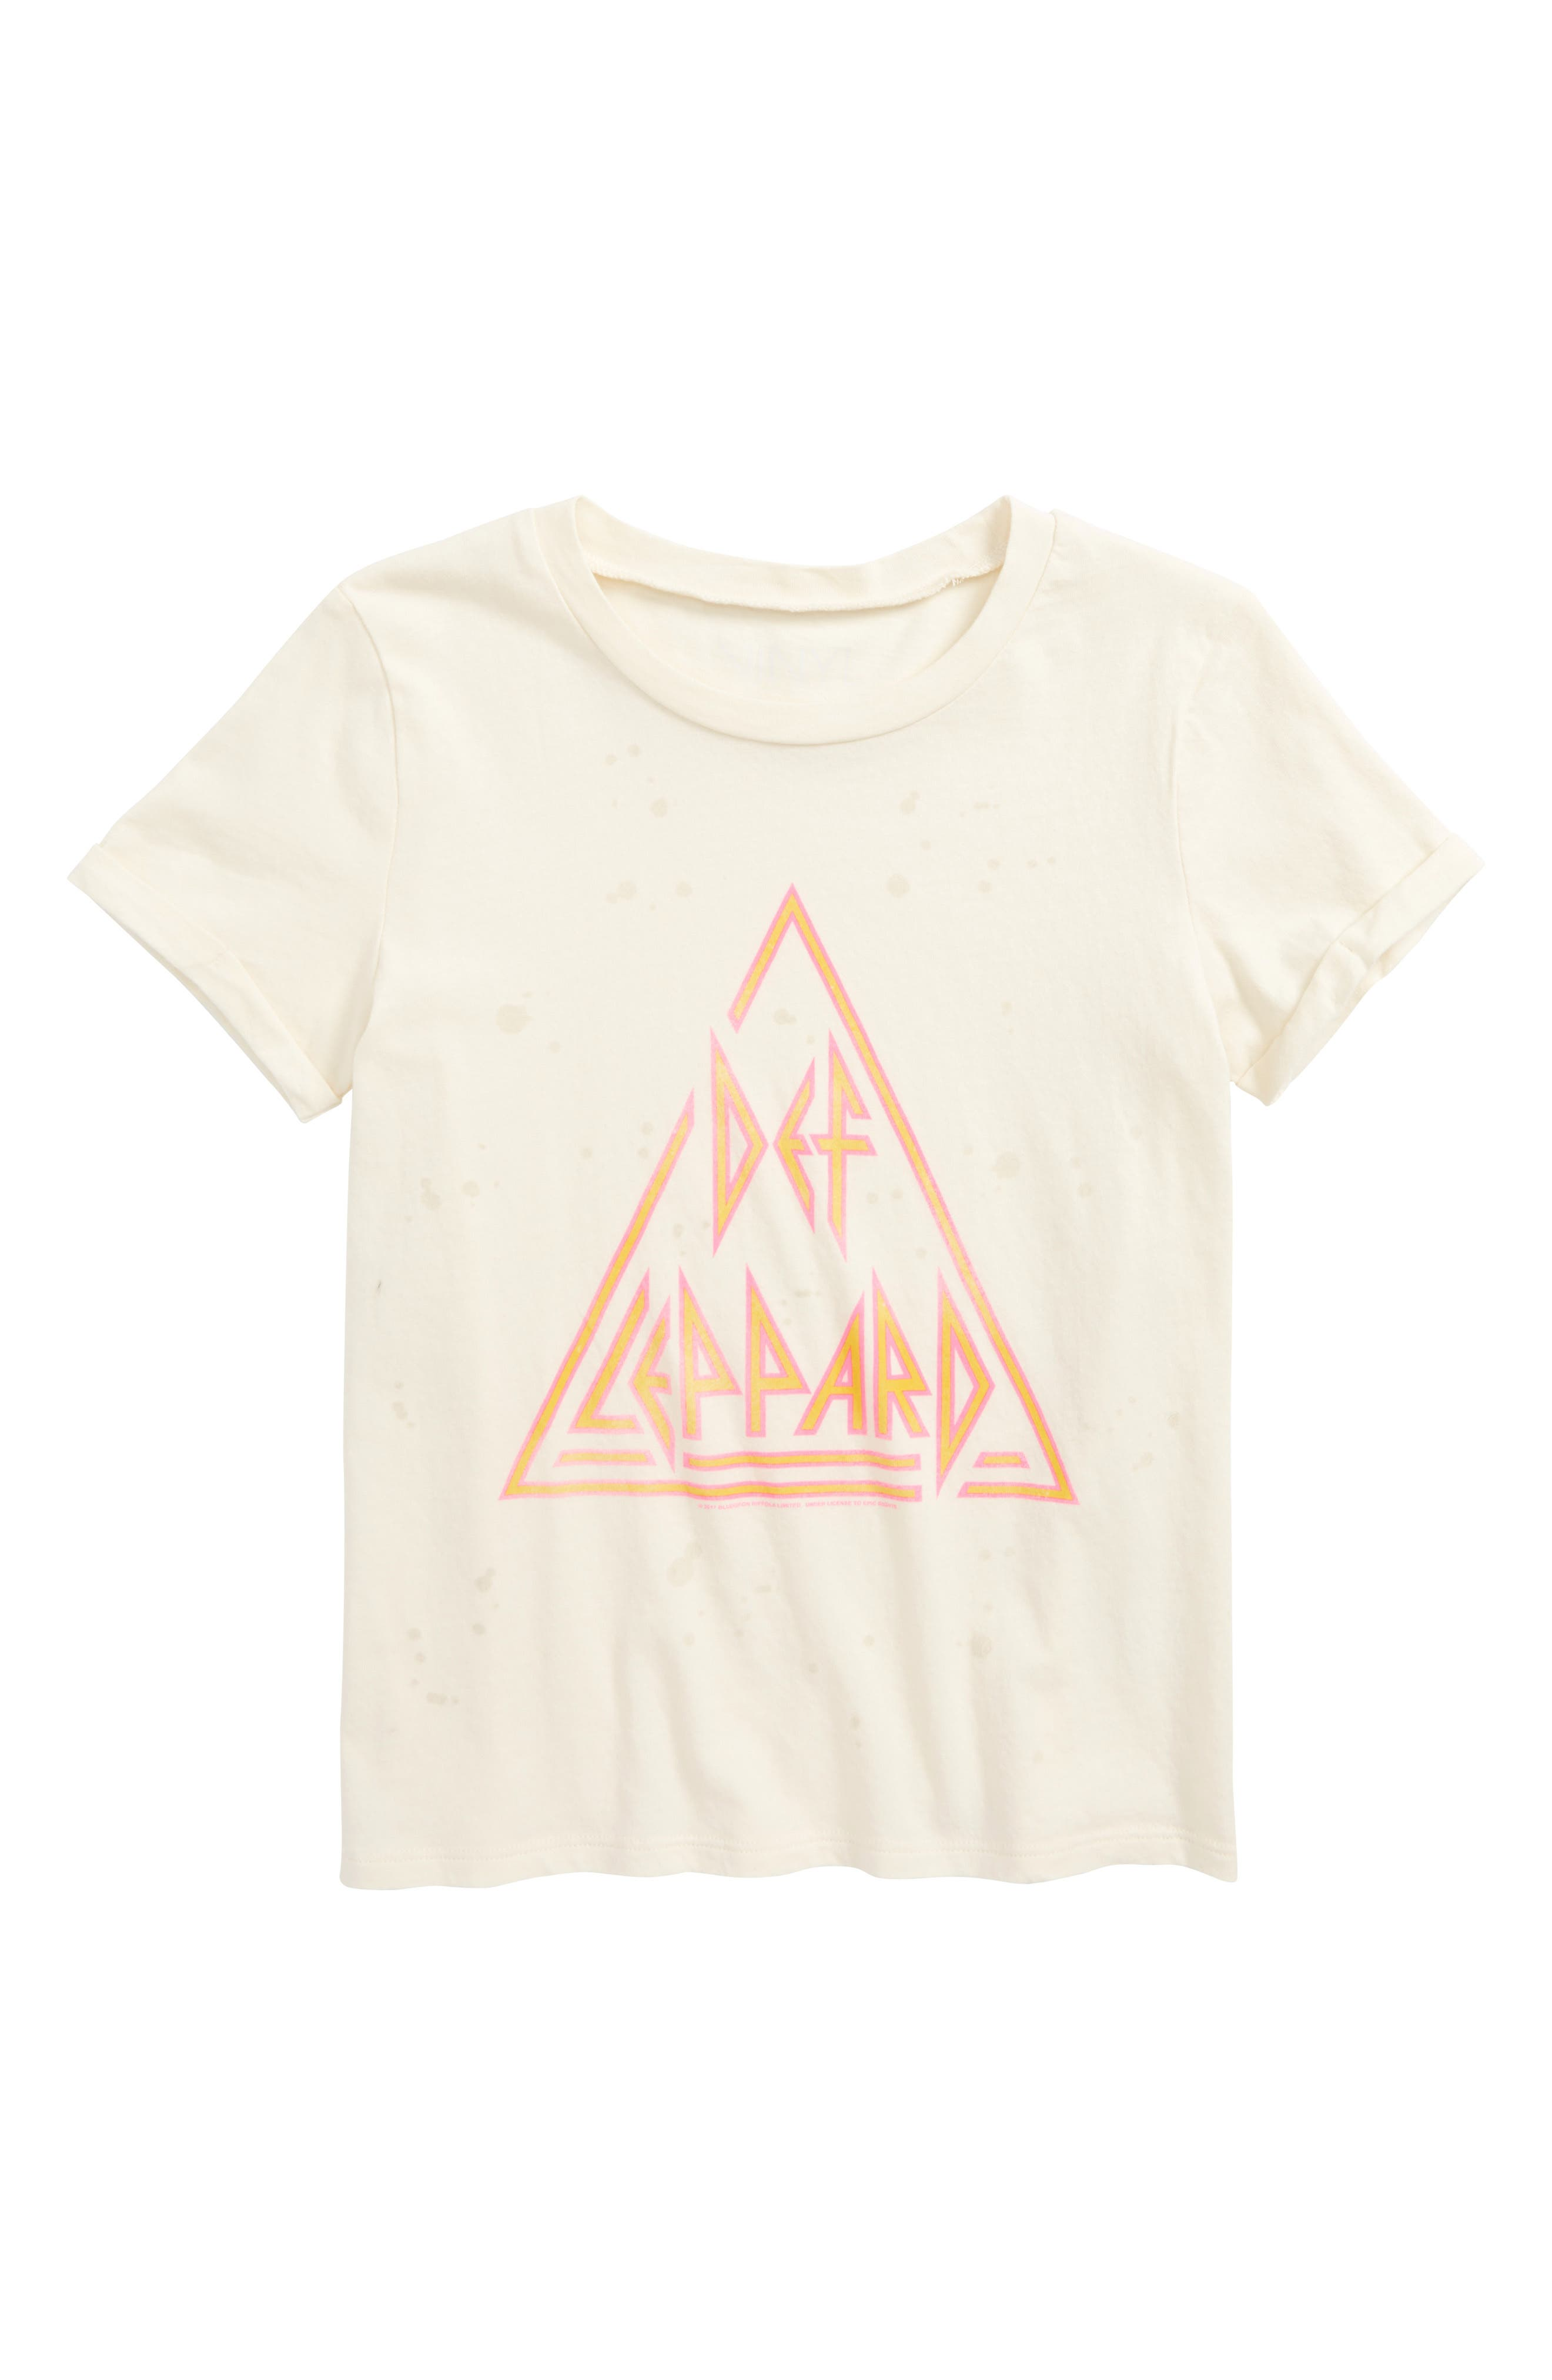 Def Leppard Graphic Tee,                         Main,                         color, Ivory